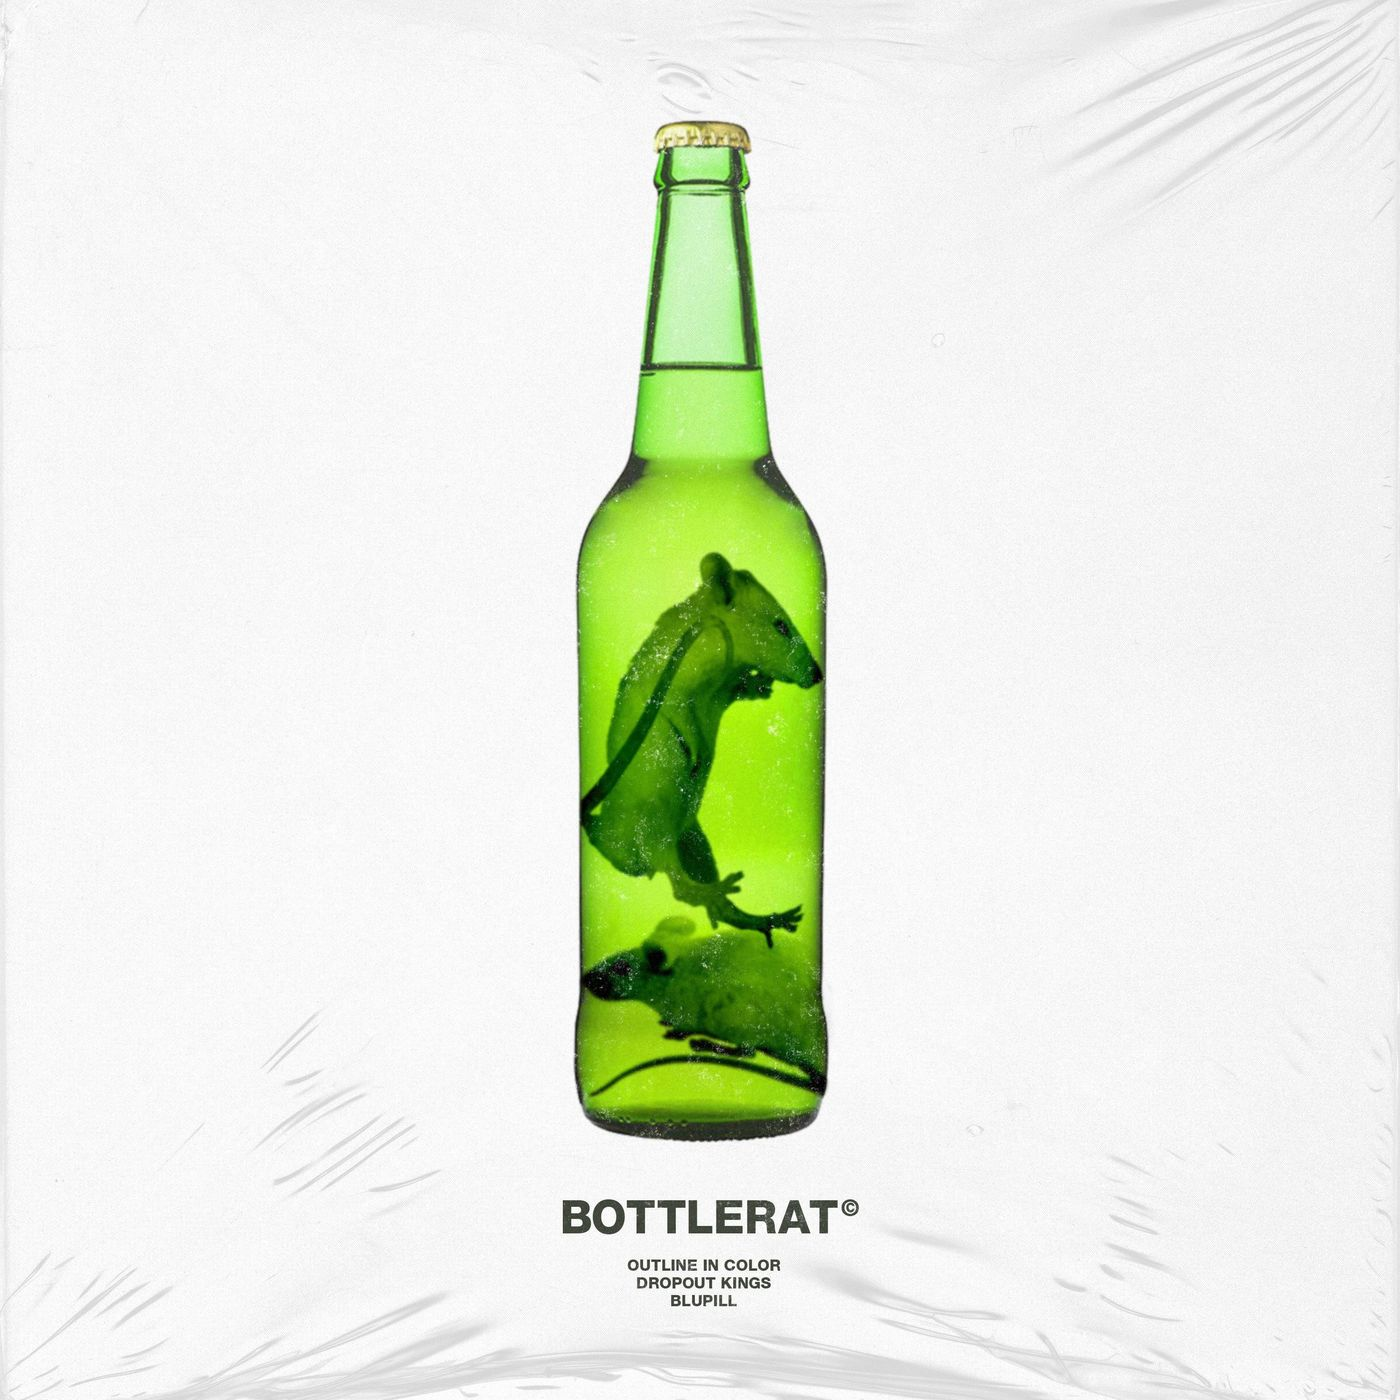 Outline In Color x Dropout Kings x Blupill- BottleRat [single] (2020)